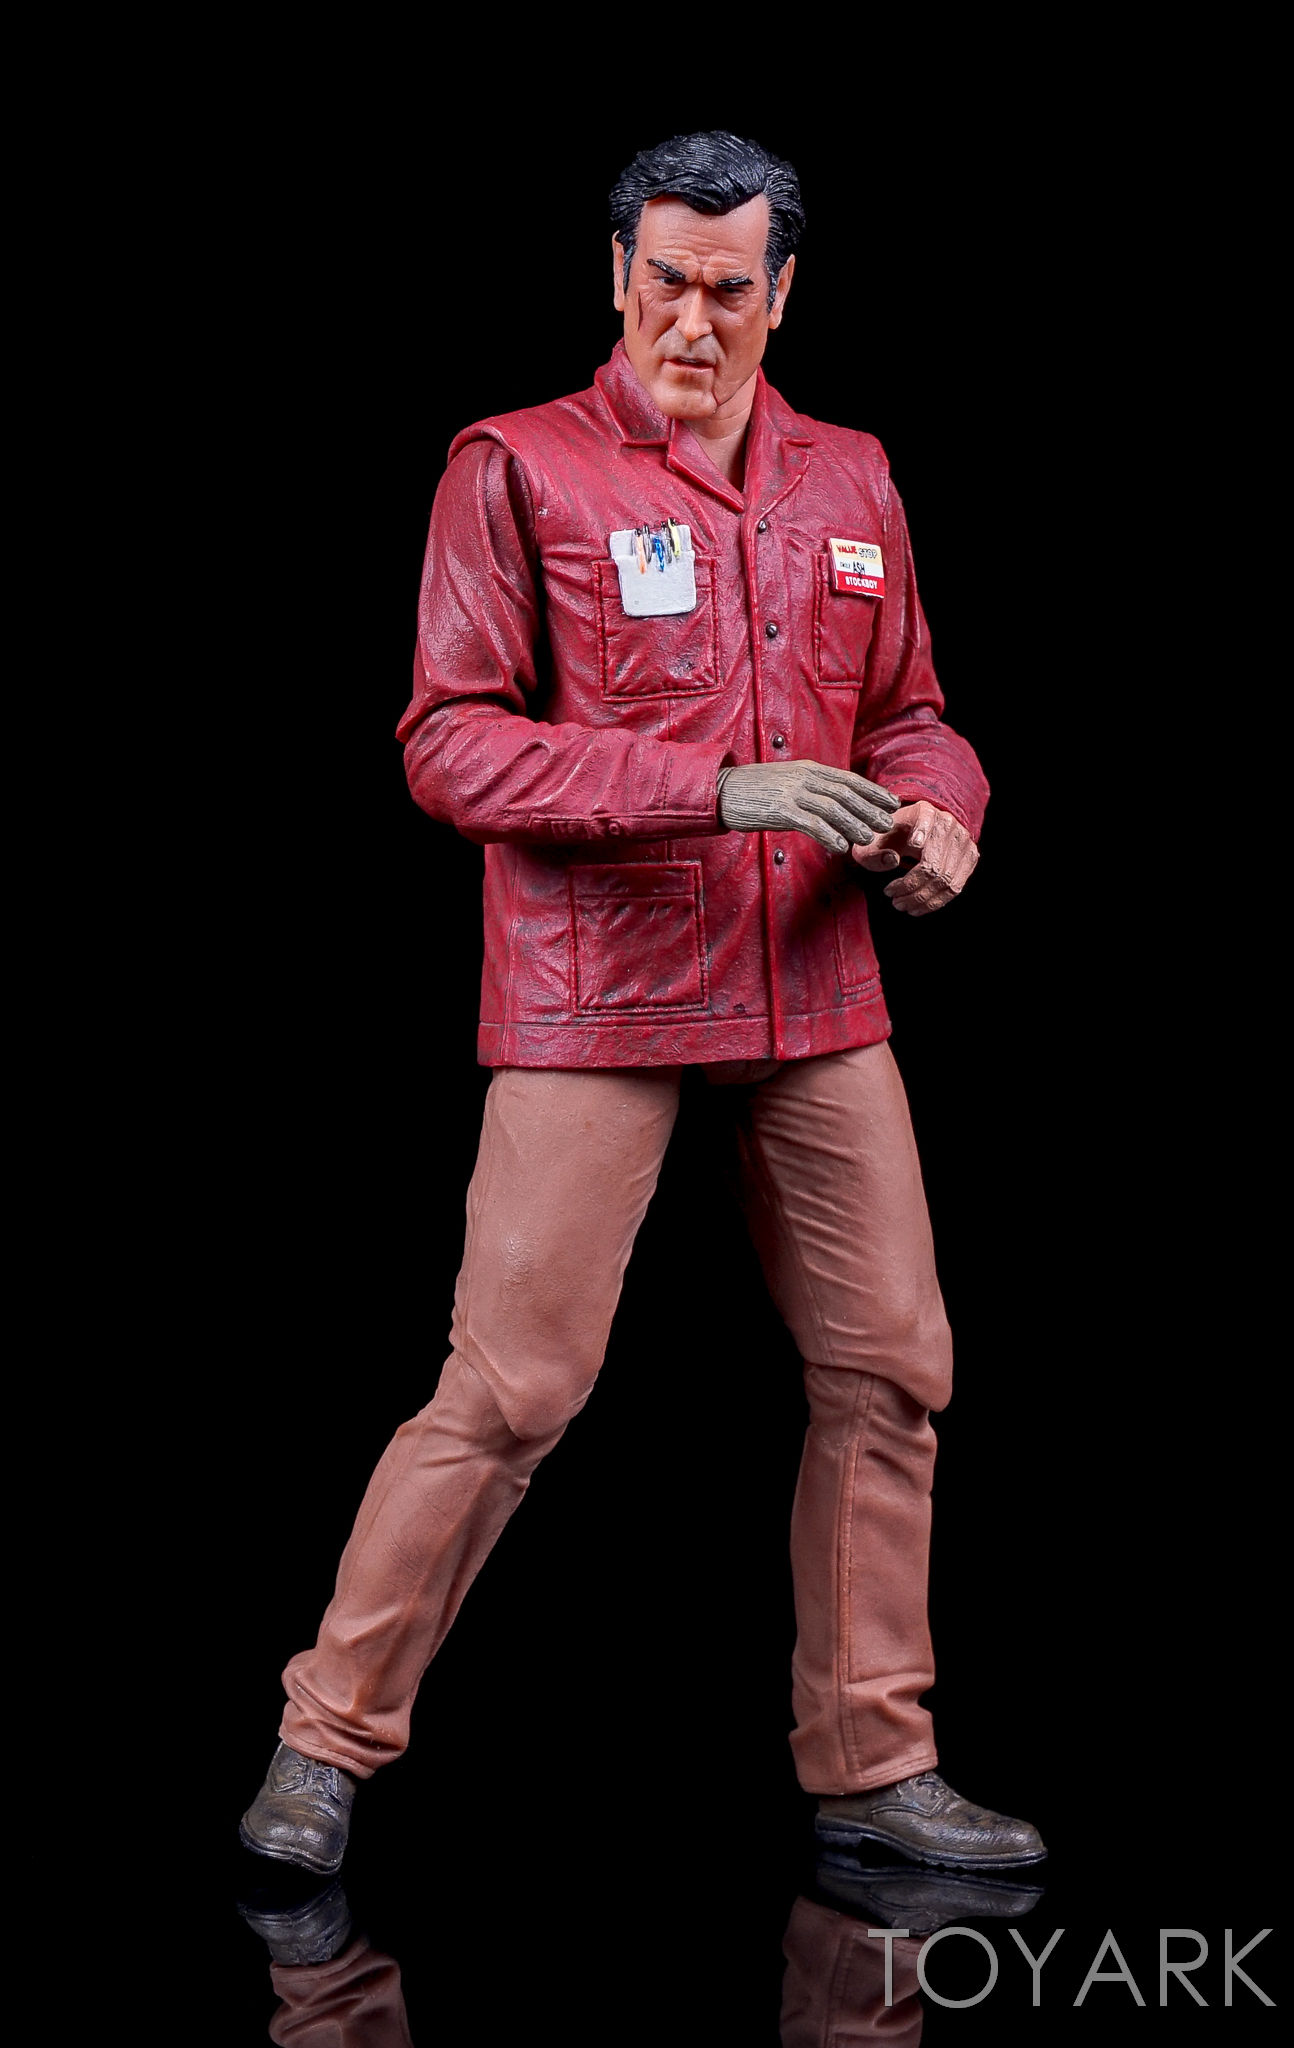 http://news.toyark.com/wp-content/uploads/sites/4/2016/09/Ash-vs-Evil-Dead-Series-1-NECA-044.jpg